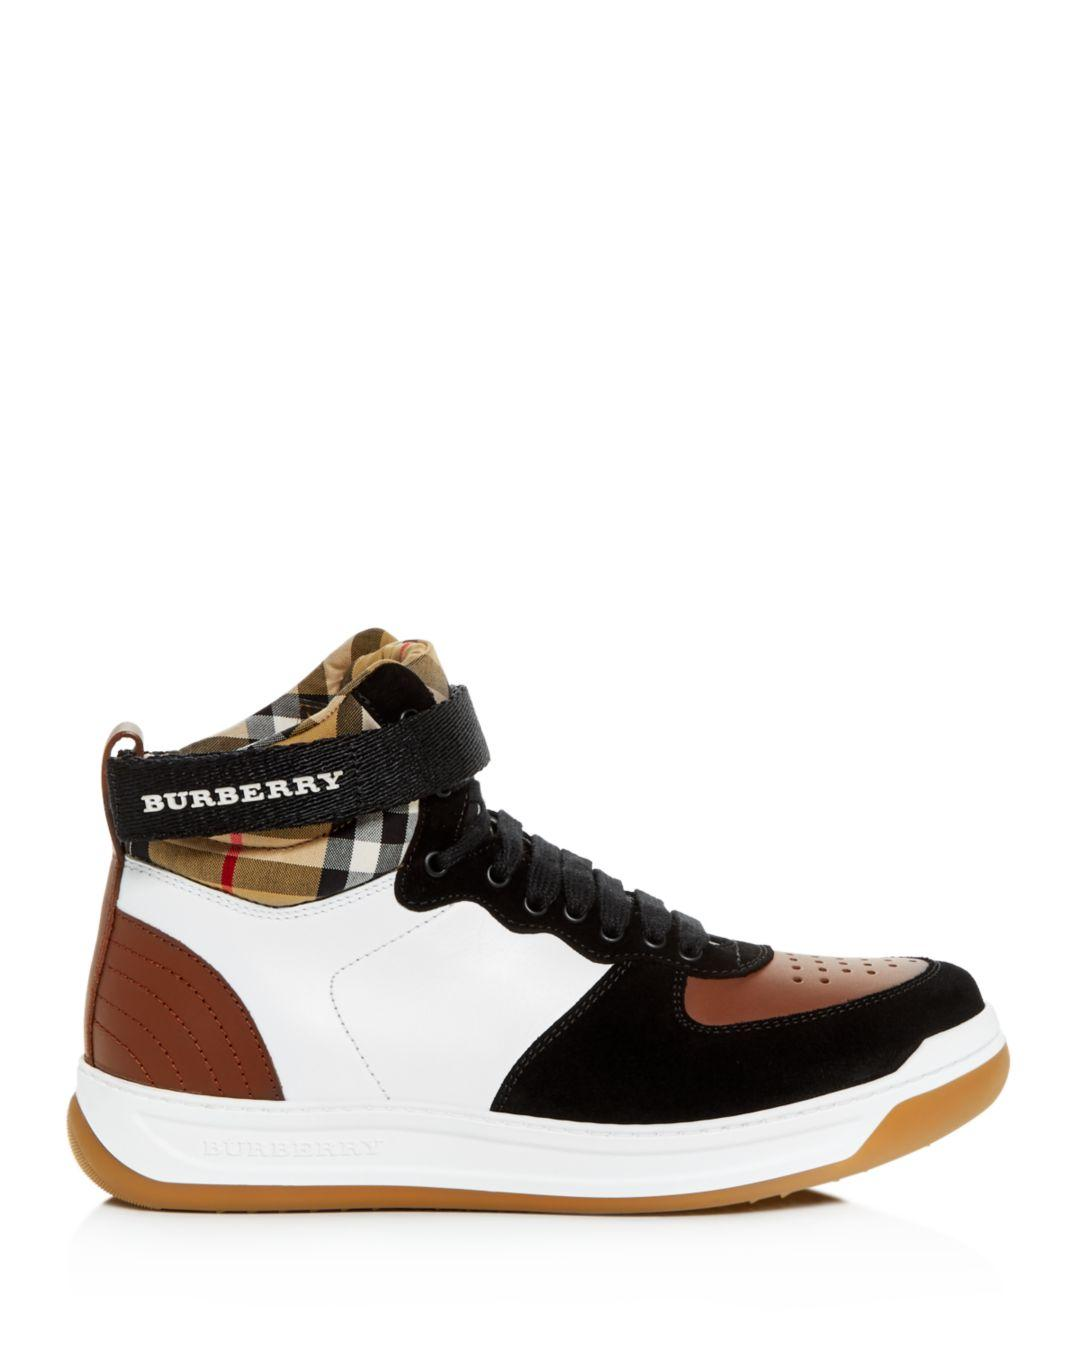 Lyst - Burberry Women s Dennis Vintage Check High-top Sneakers 4b569c8f4a2